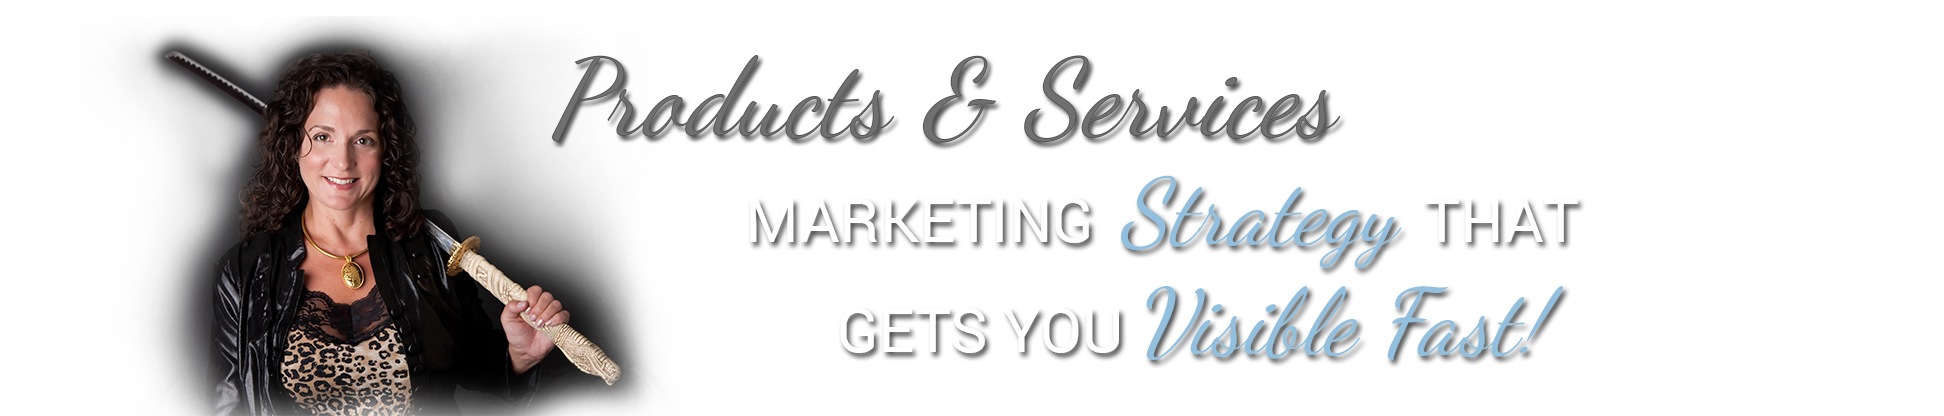 Marketing Strategy that gets you Visible Fast!